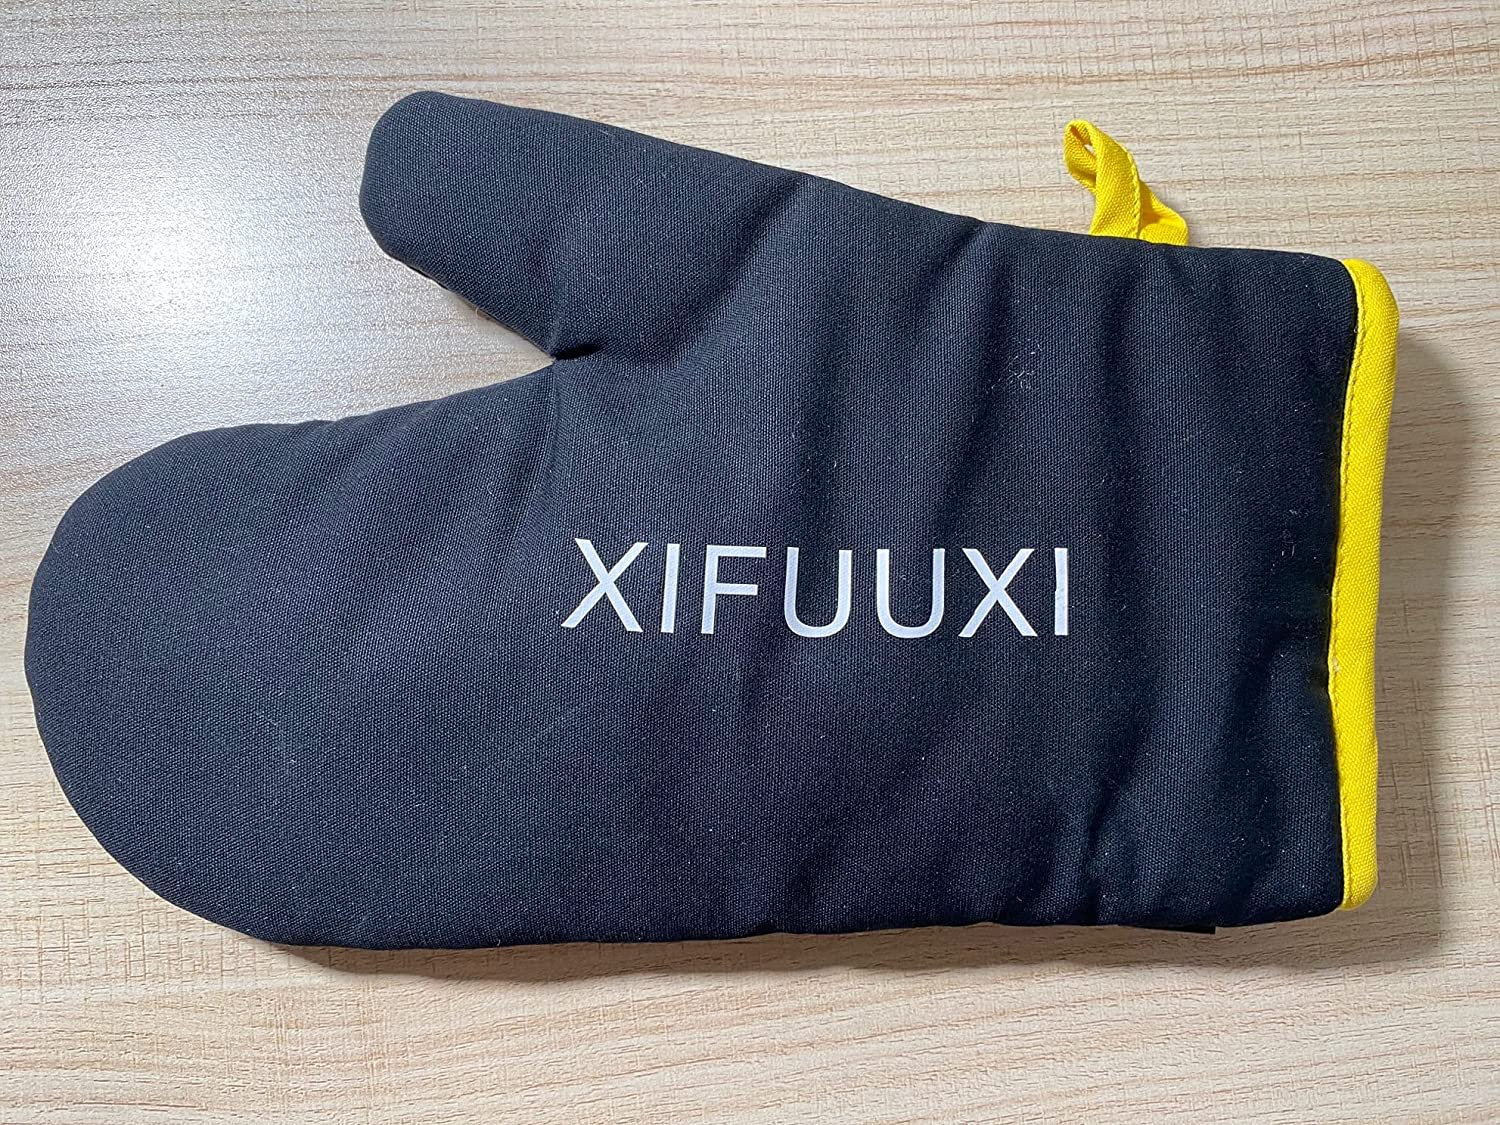 XIFUUXI specialty shop Silicone Oven Mitts Heat Resistant to No of F 500 1 Pair NEW before selling ☆